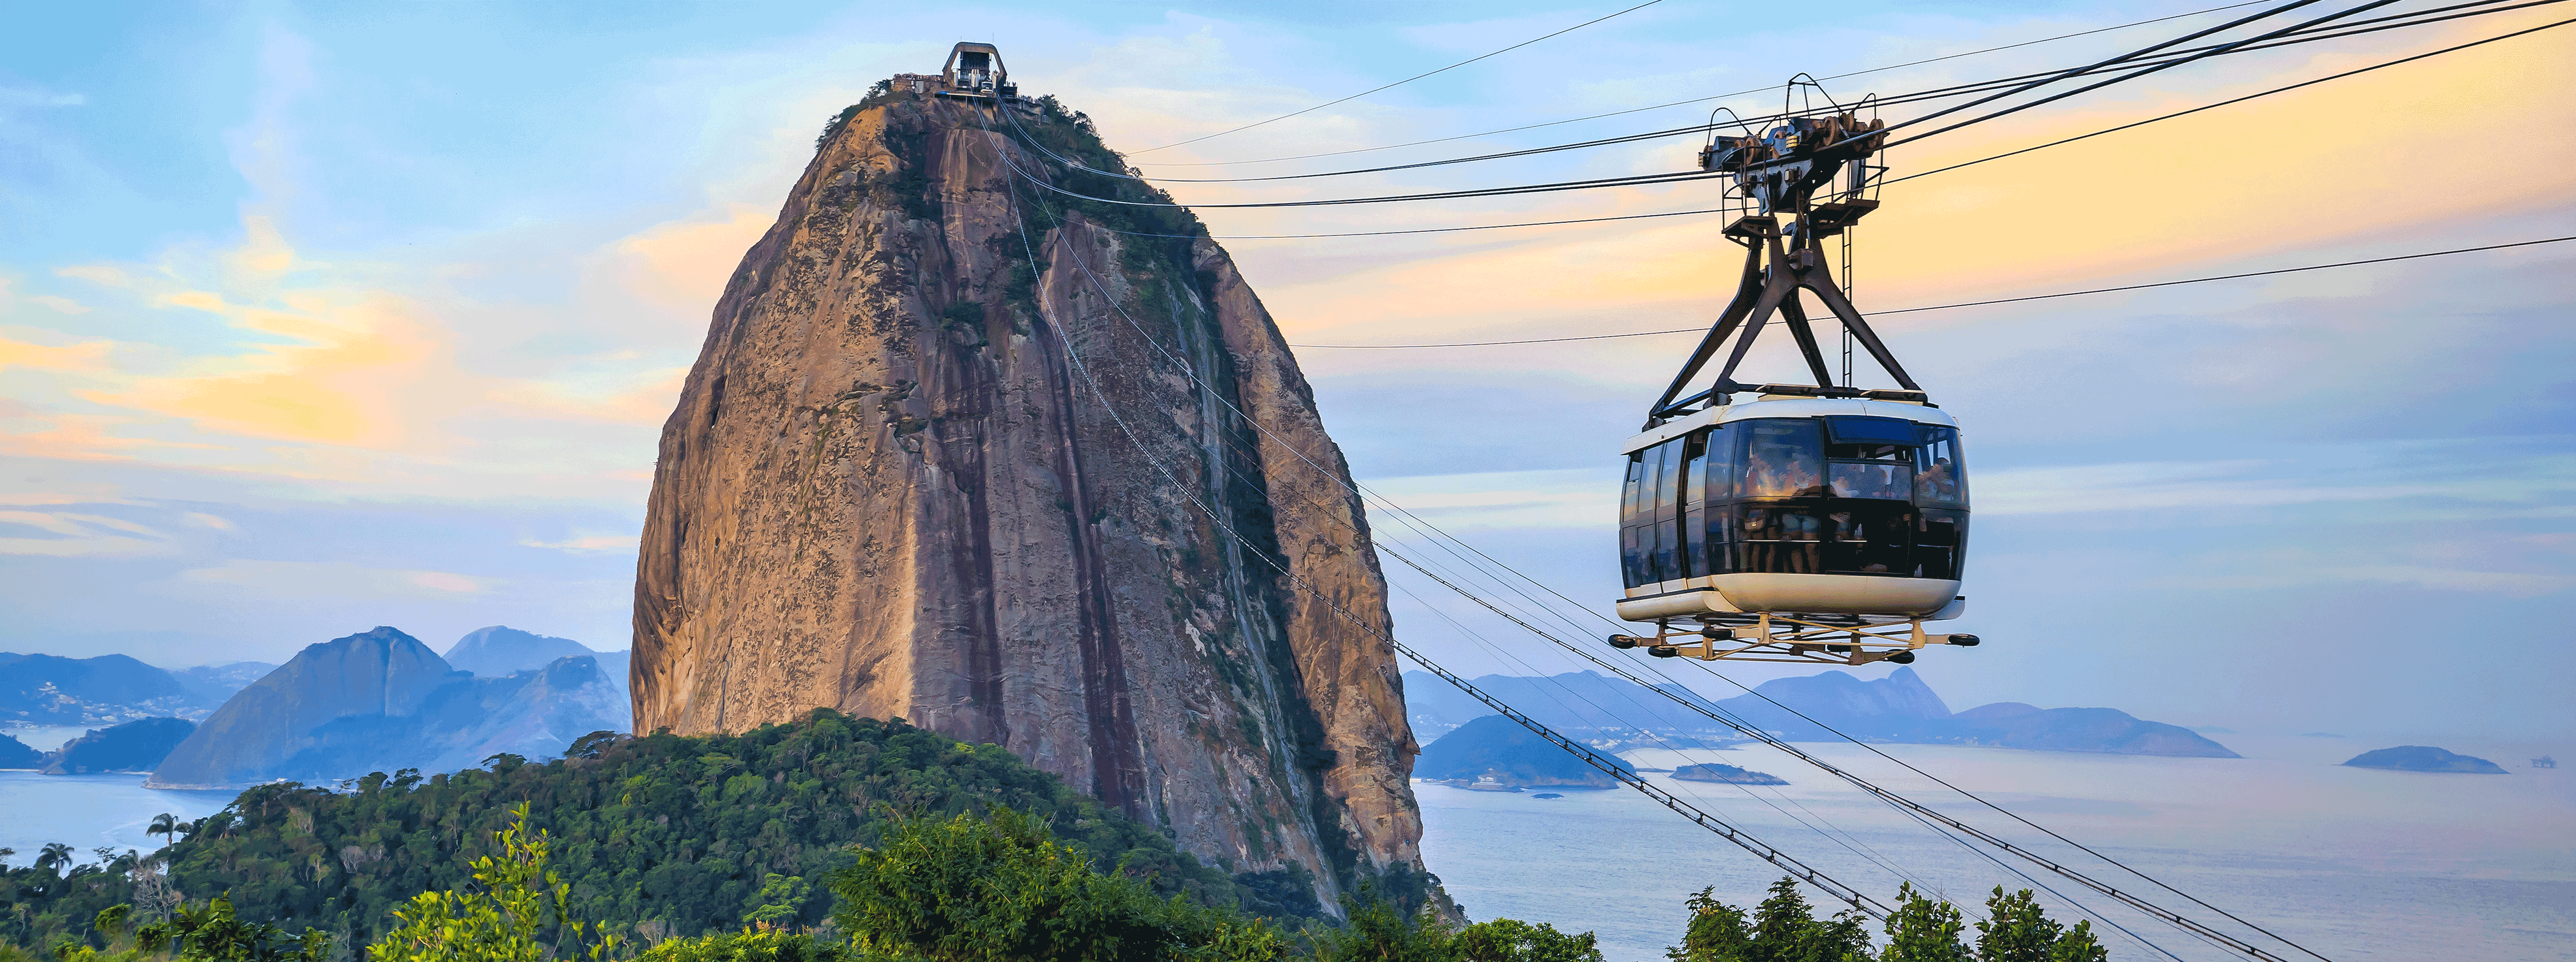 /resource/Images/southamerica/brazil/headerimage/Cable-car-and-Sugar-Loaf-mountain-in-Rio-de-Janeiro.png